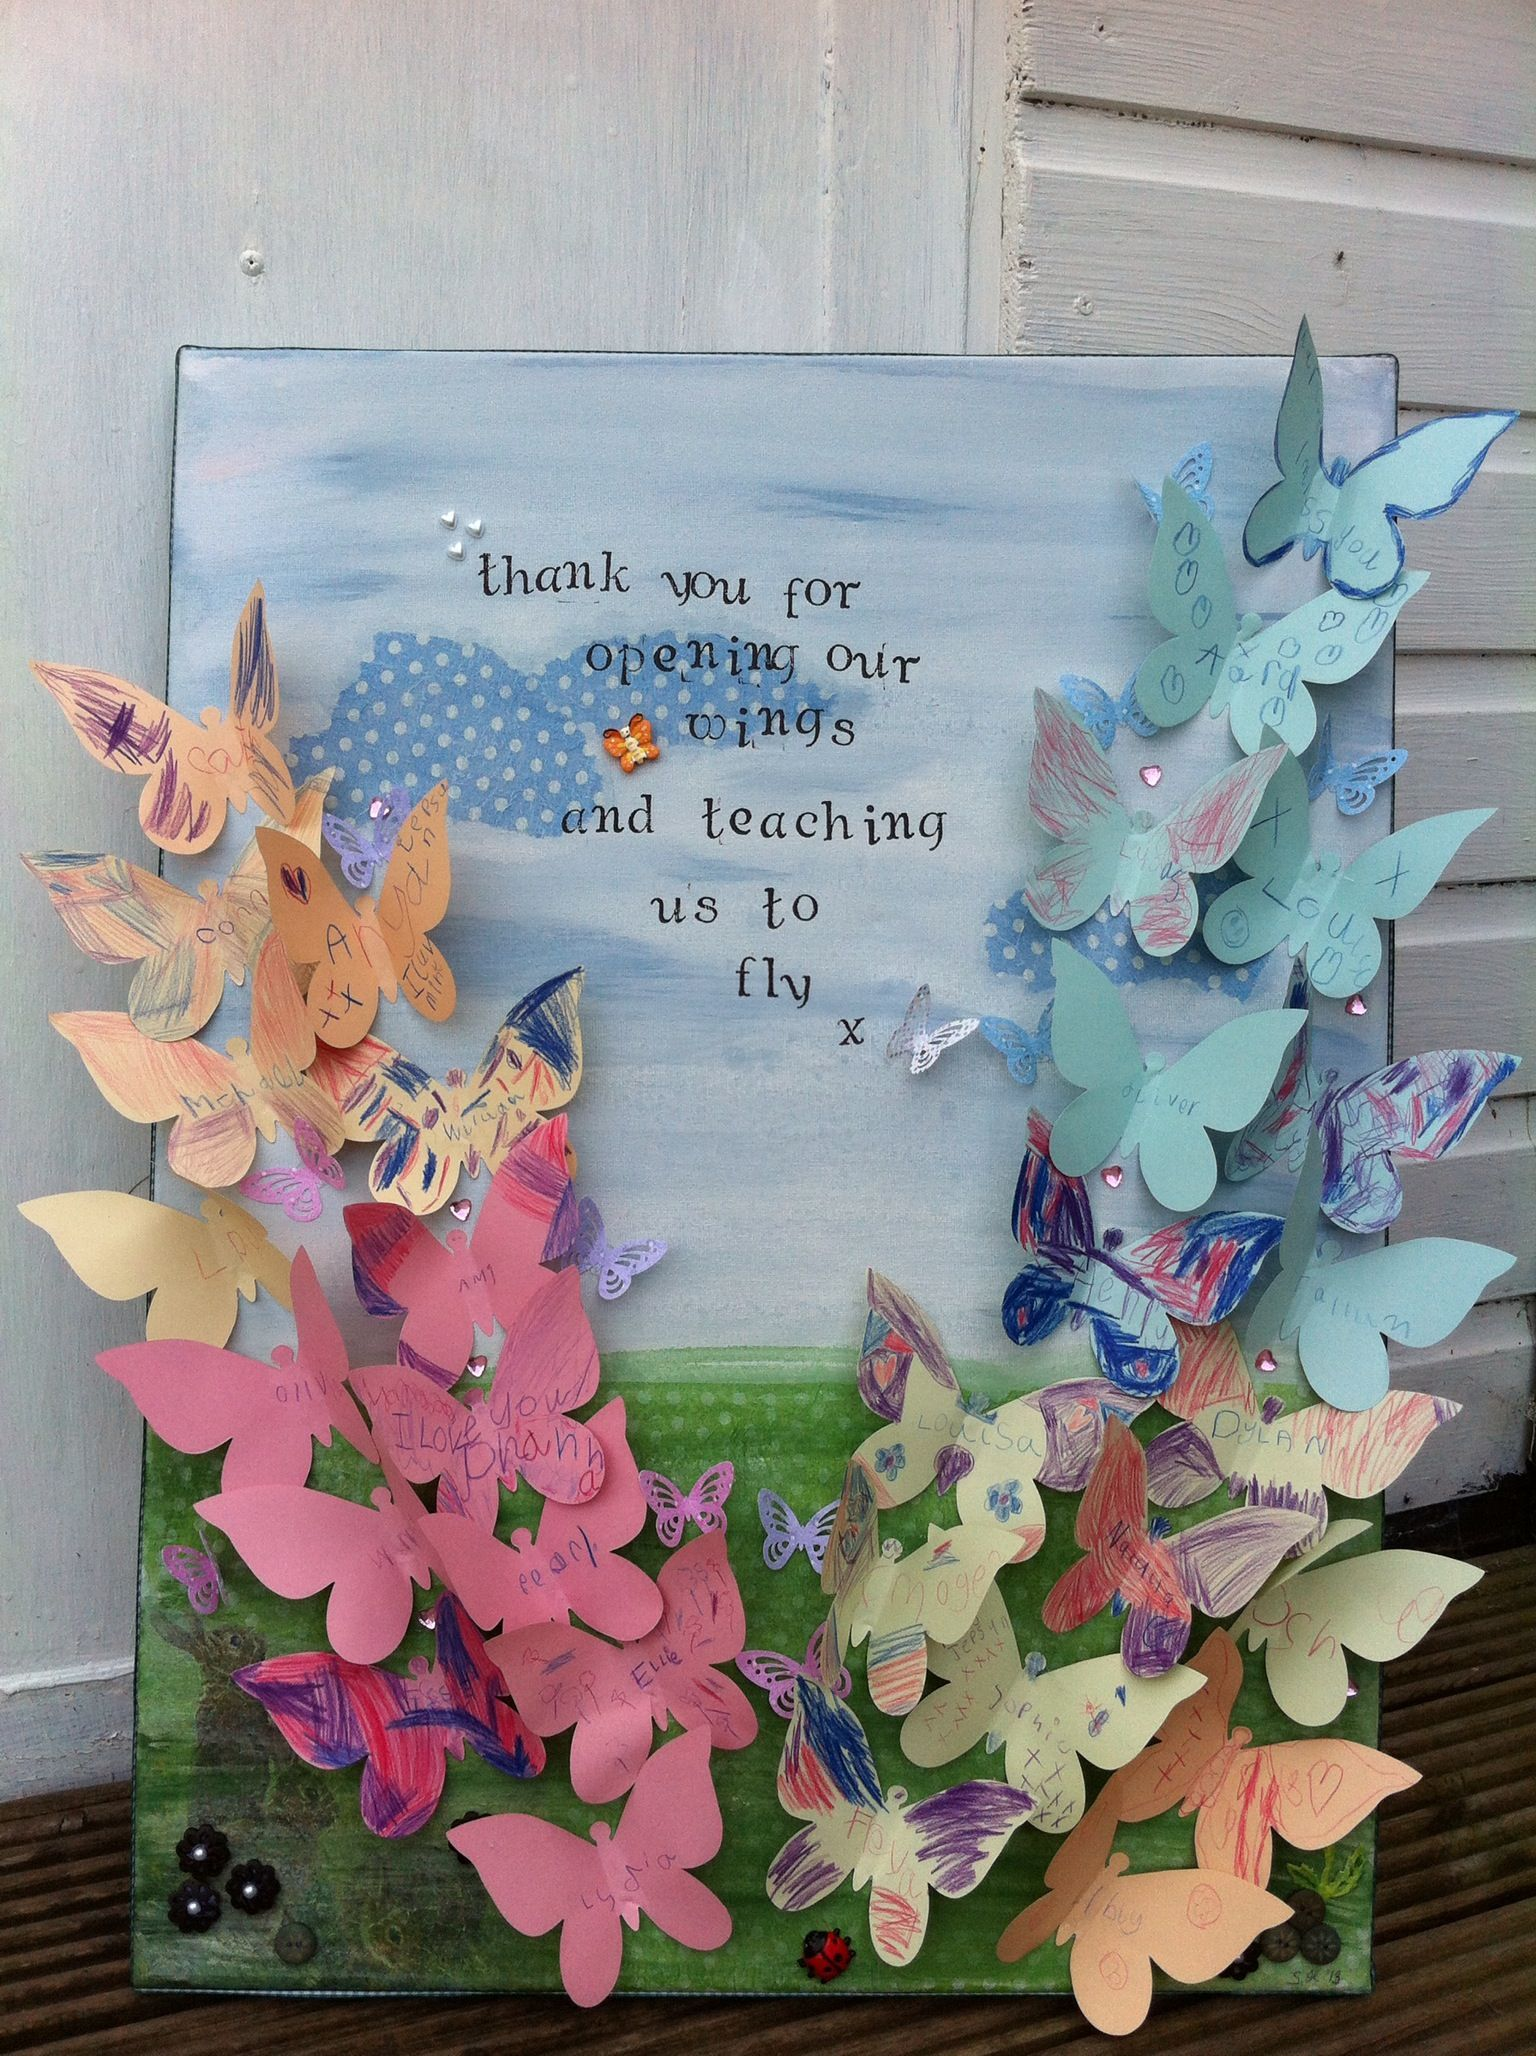 Beautiful end of termyear teacher gift Each